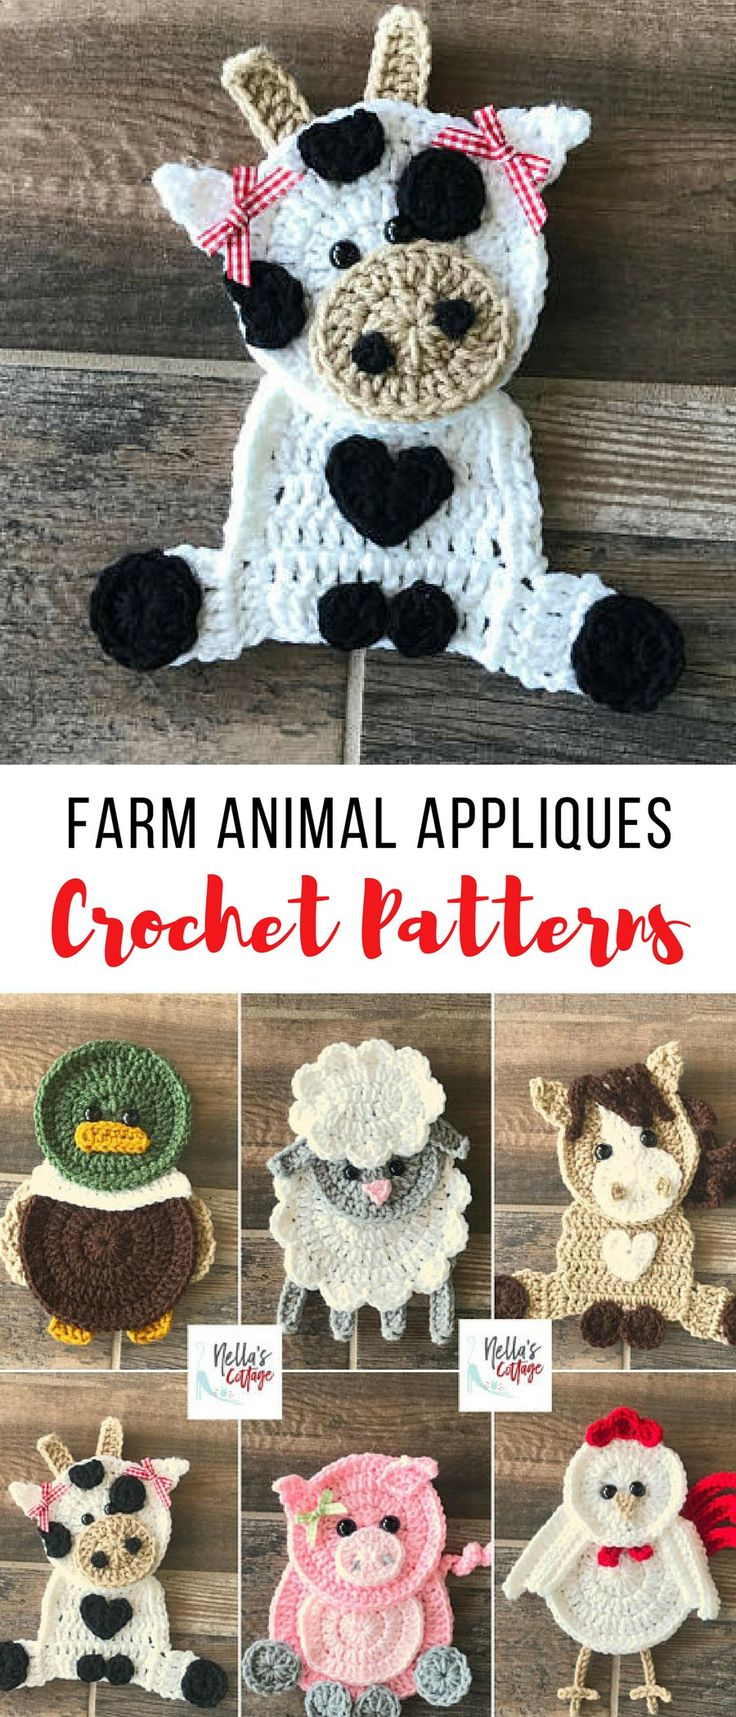 so many things you could put these farm animal crochet appliques on –blankets, hats, scarves…adorable crochet patterns #crochetanimals #crochetfarmanimals #crochetappliquepatterns #crochetpatterns #crochet #affiliate